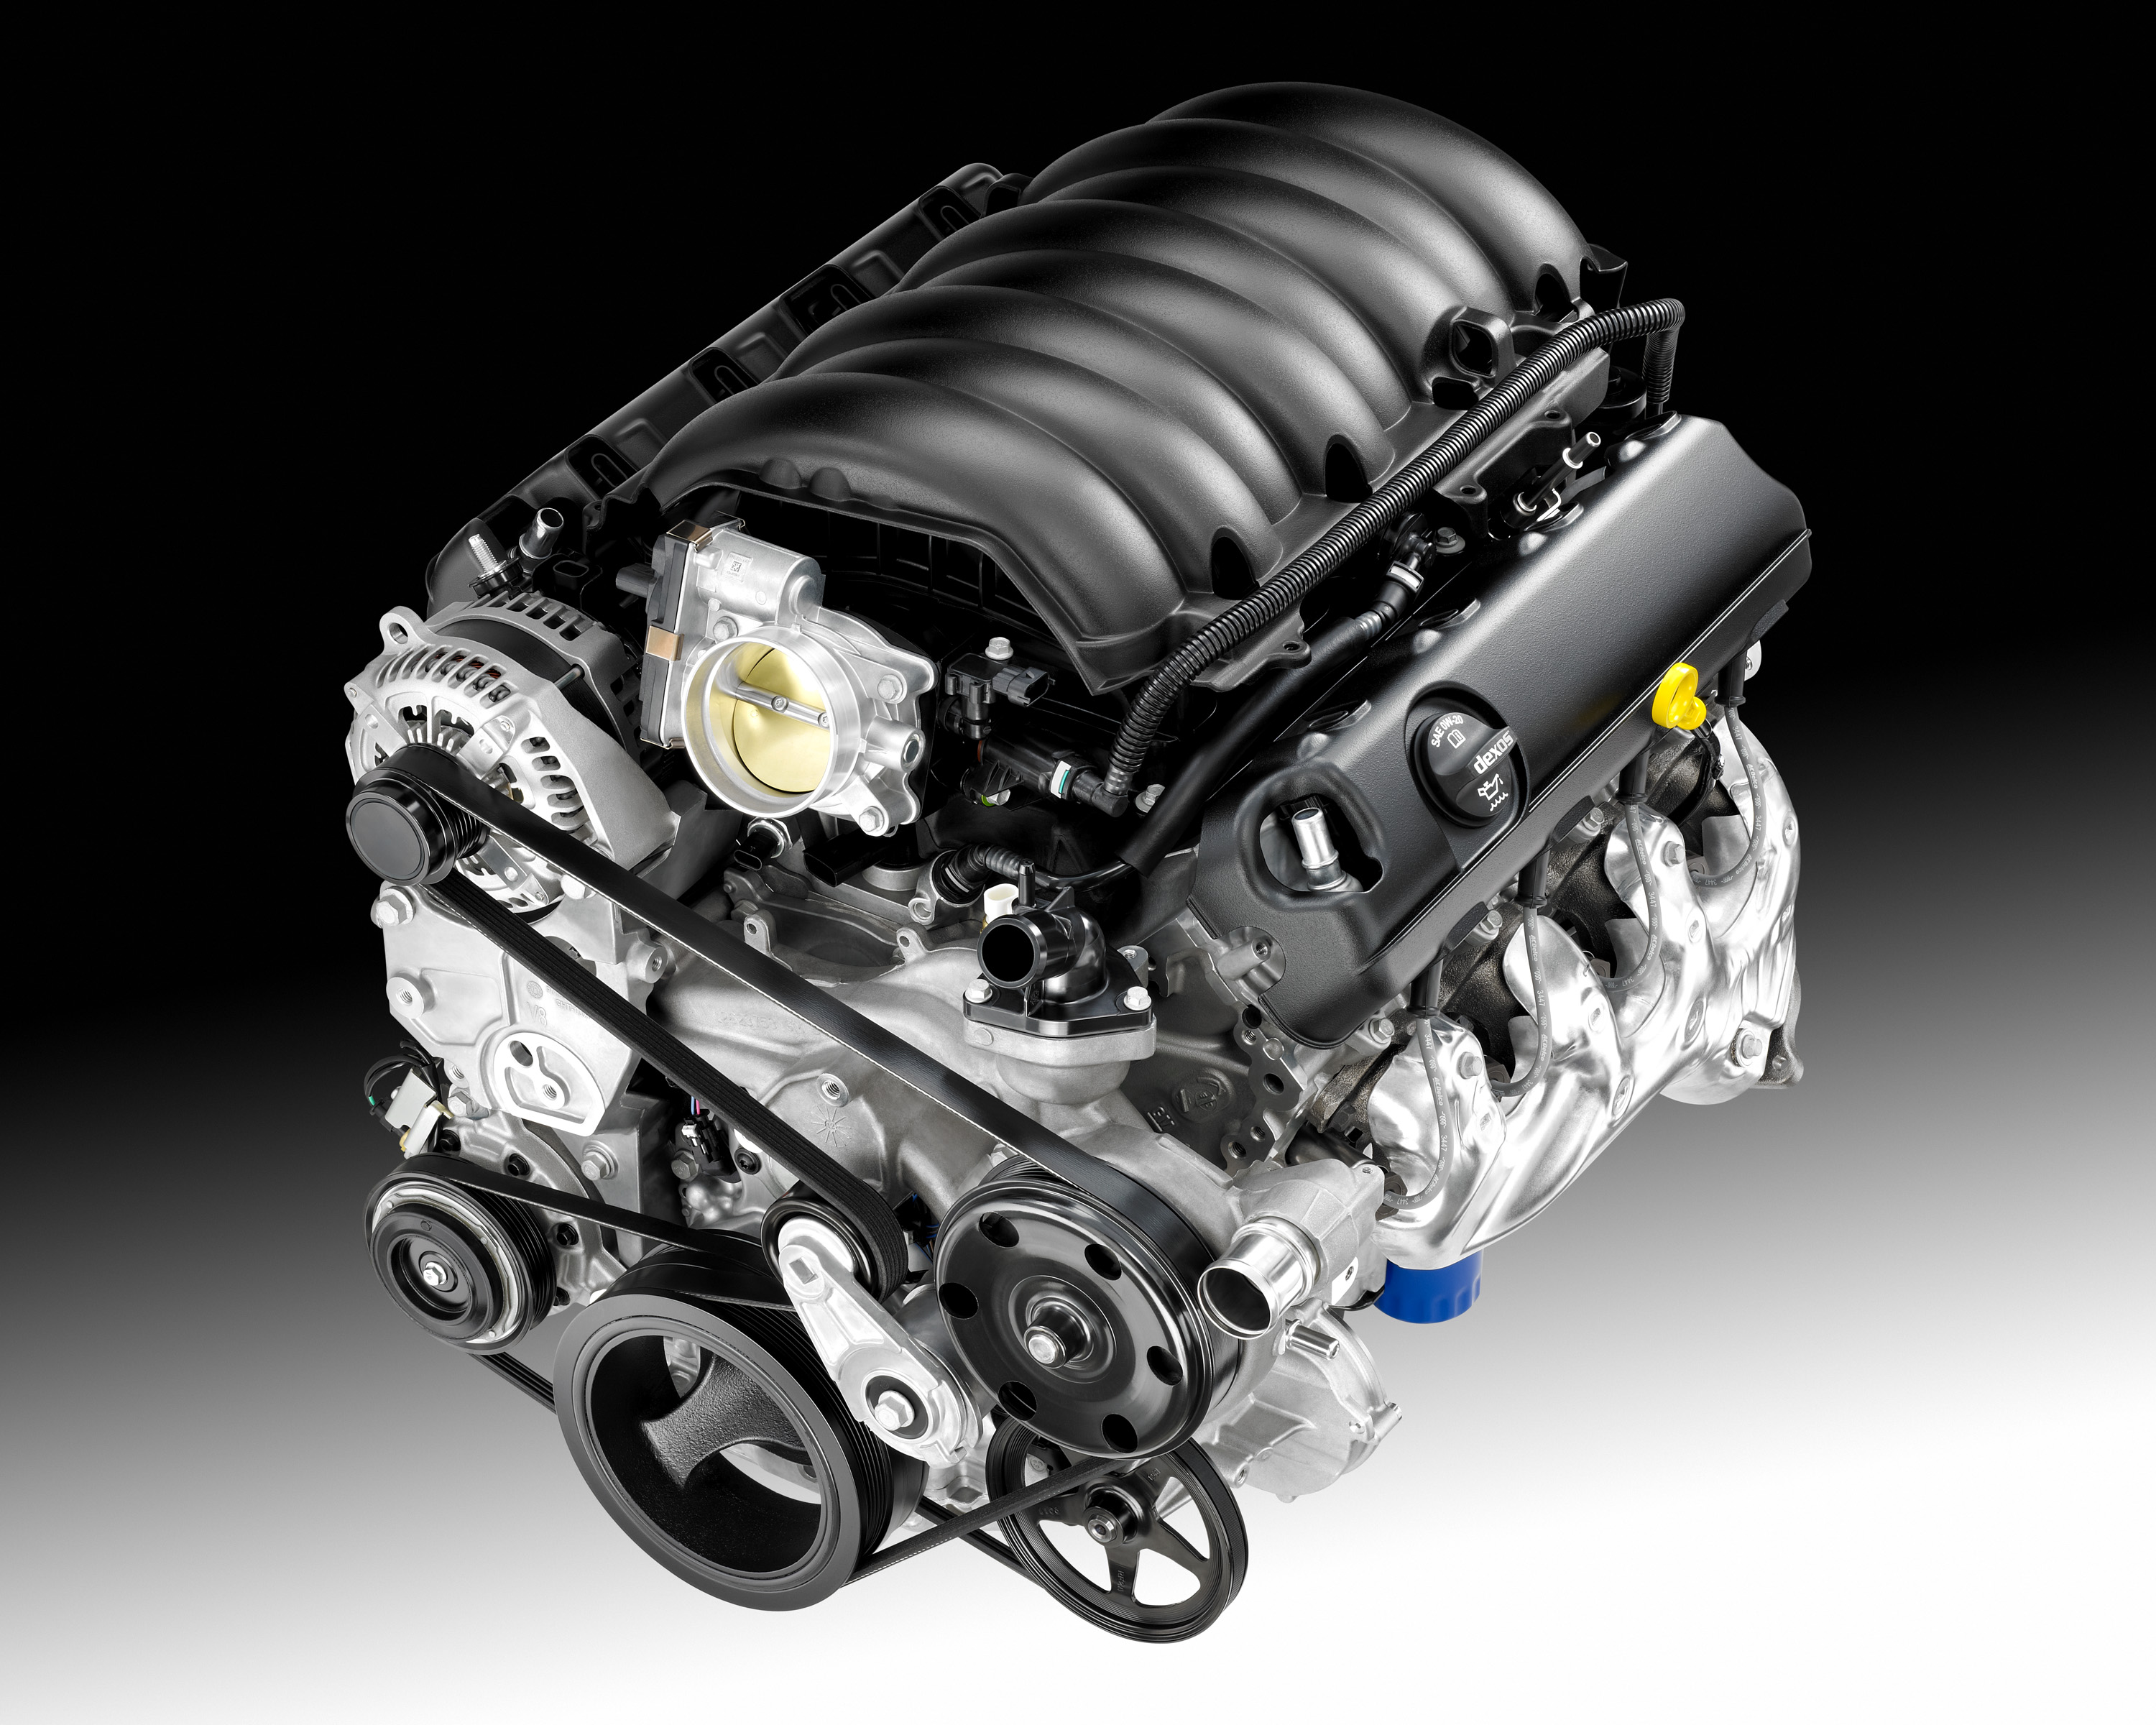 4 8 Silverado Engine Diagram Start Building A Wiring Chevrolet 3 2014 Delivers Power Efficiency And Value Rh Media Gm Com Chevy Knock